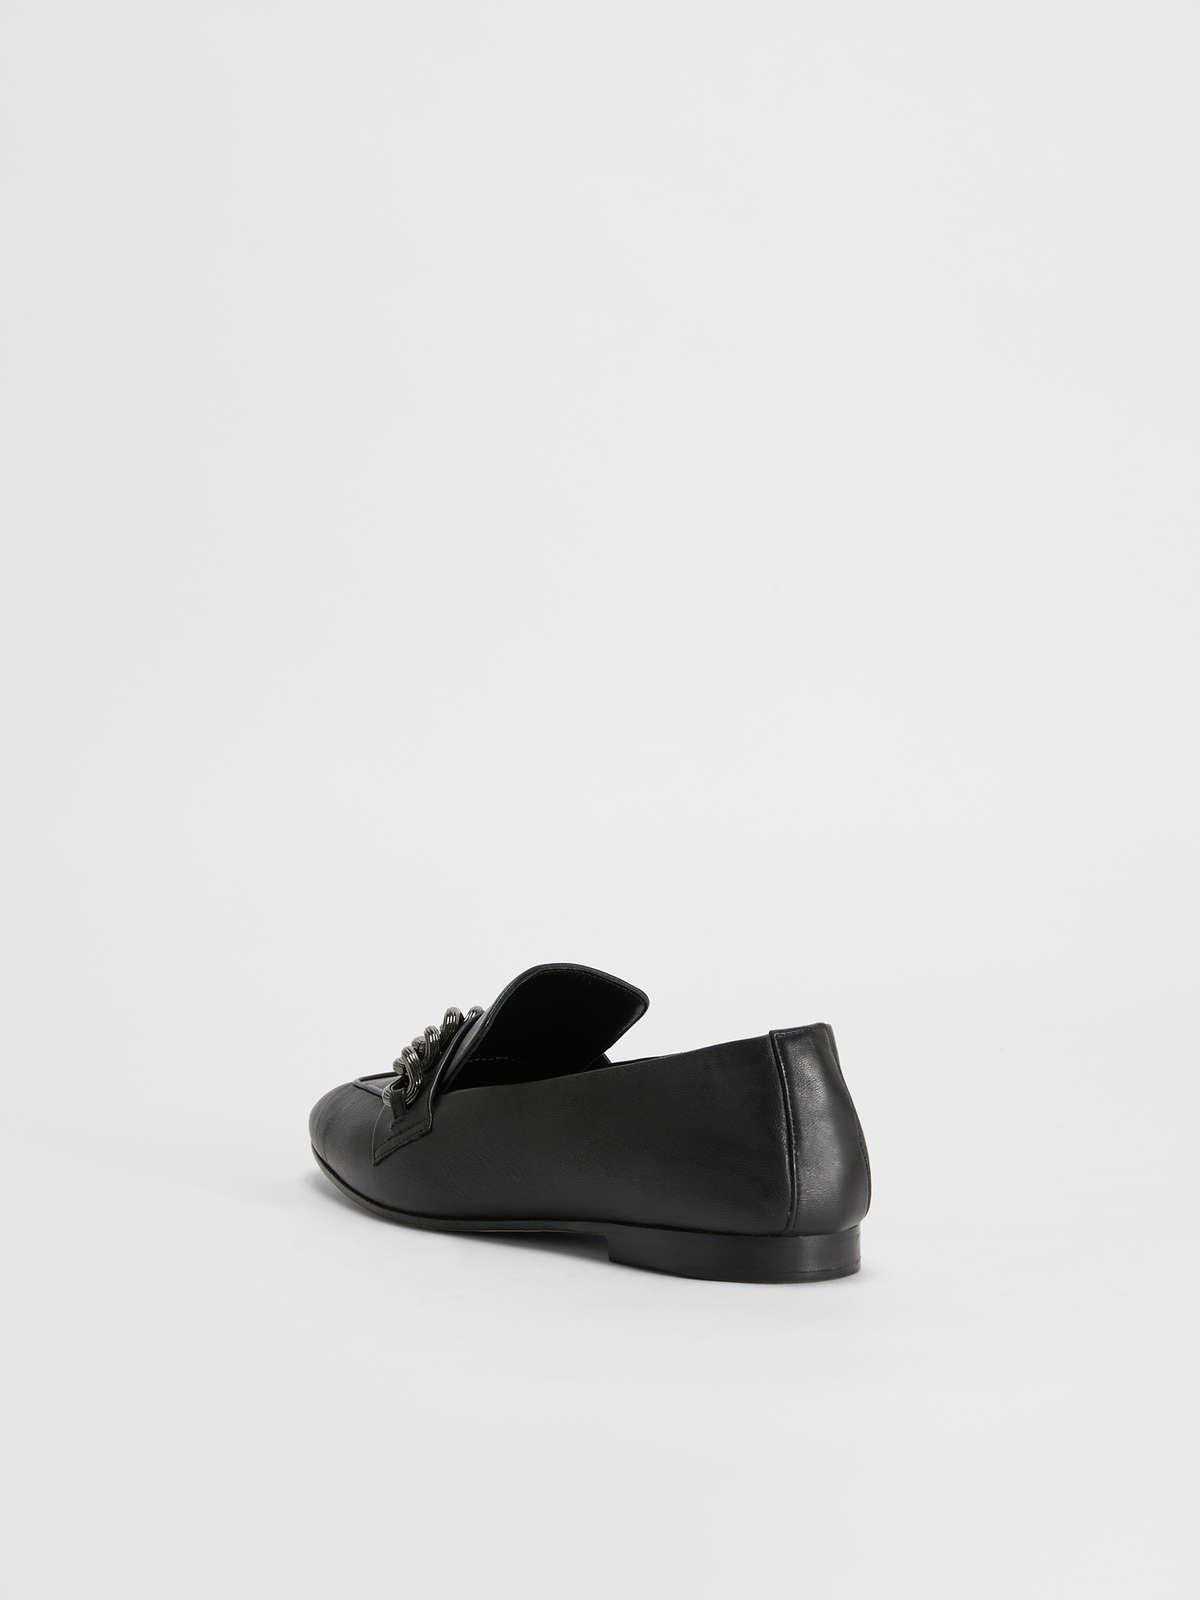 Womens Max Mara Flat Shoes | Nappa Leather Loafers Black